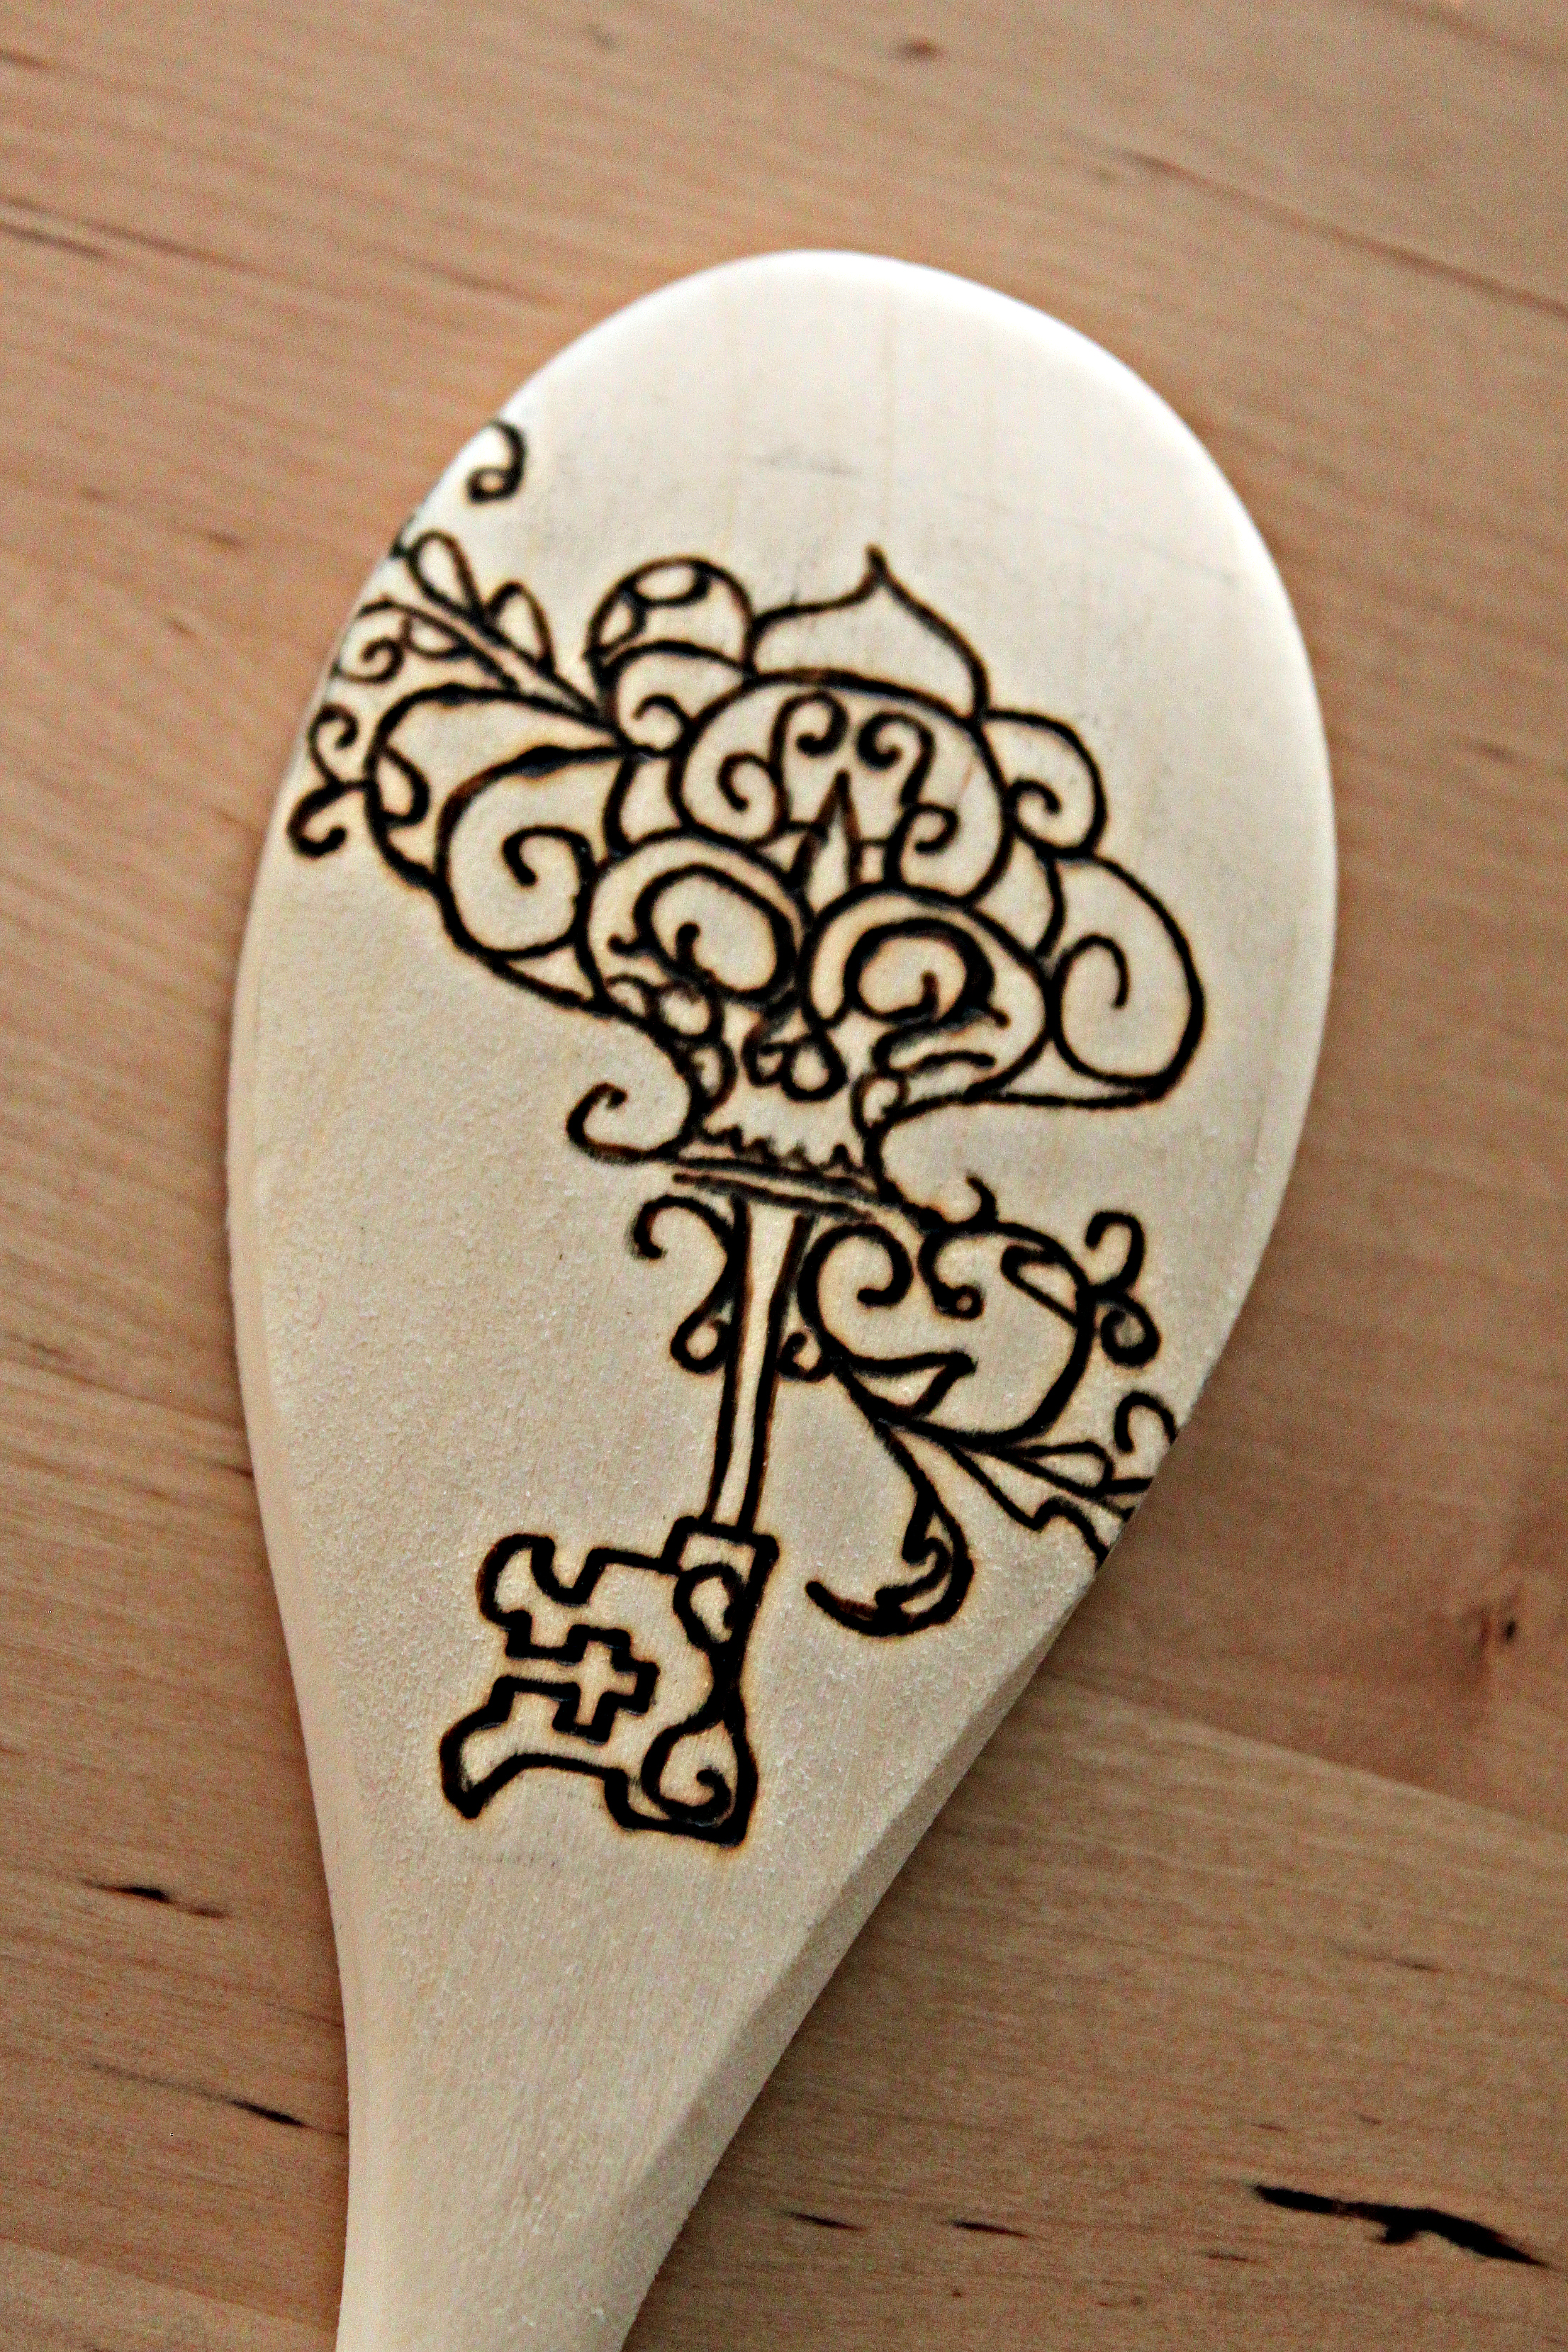 Skeleton Key Spoon